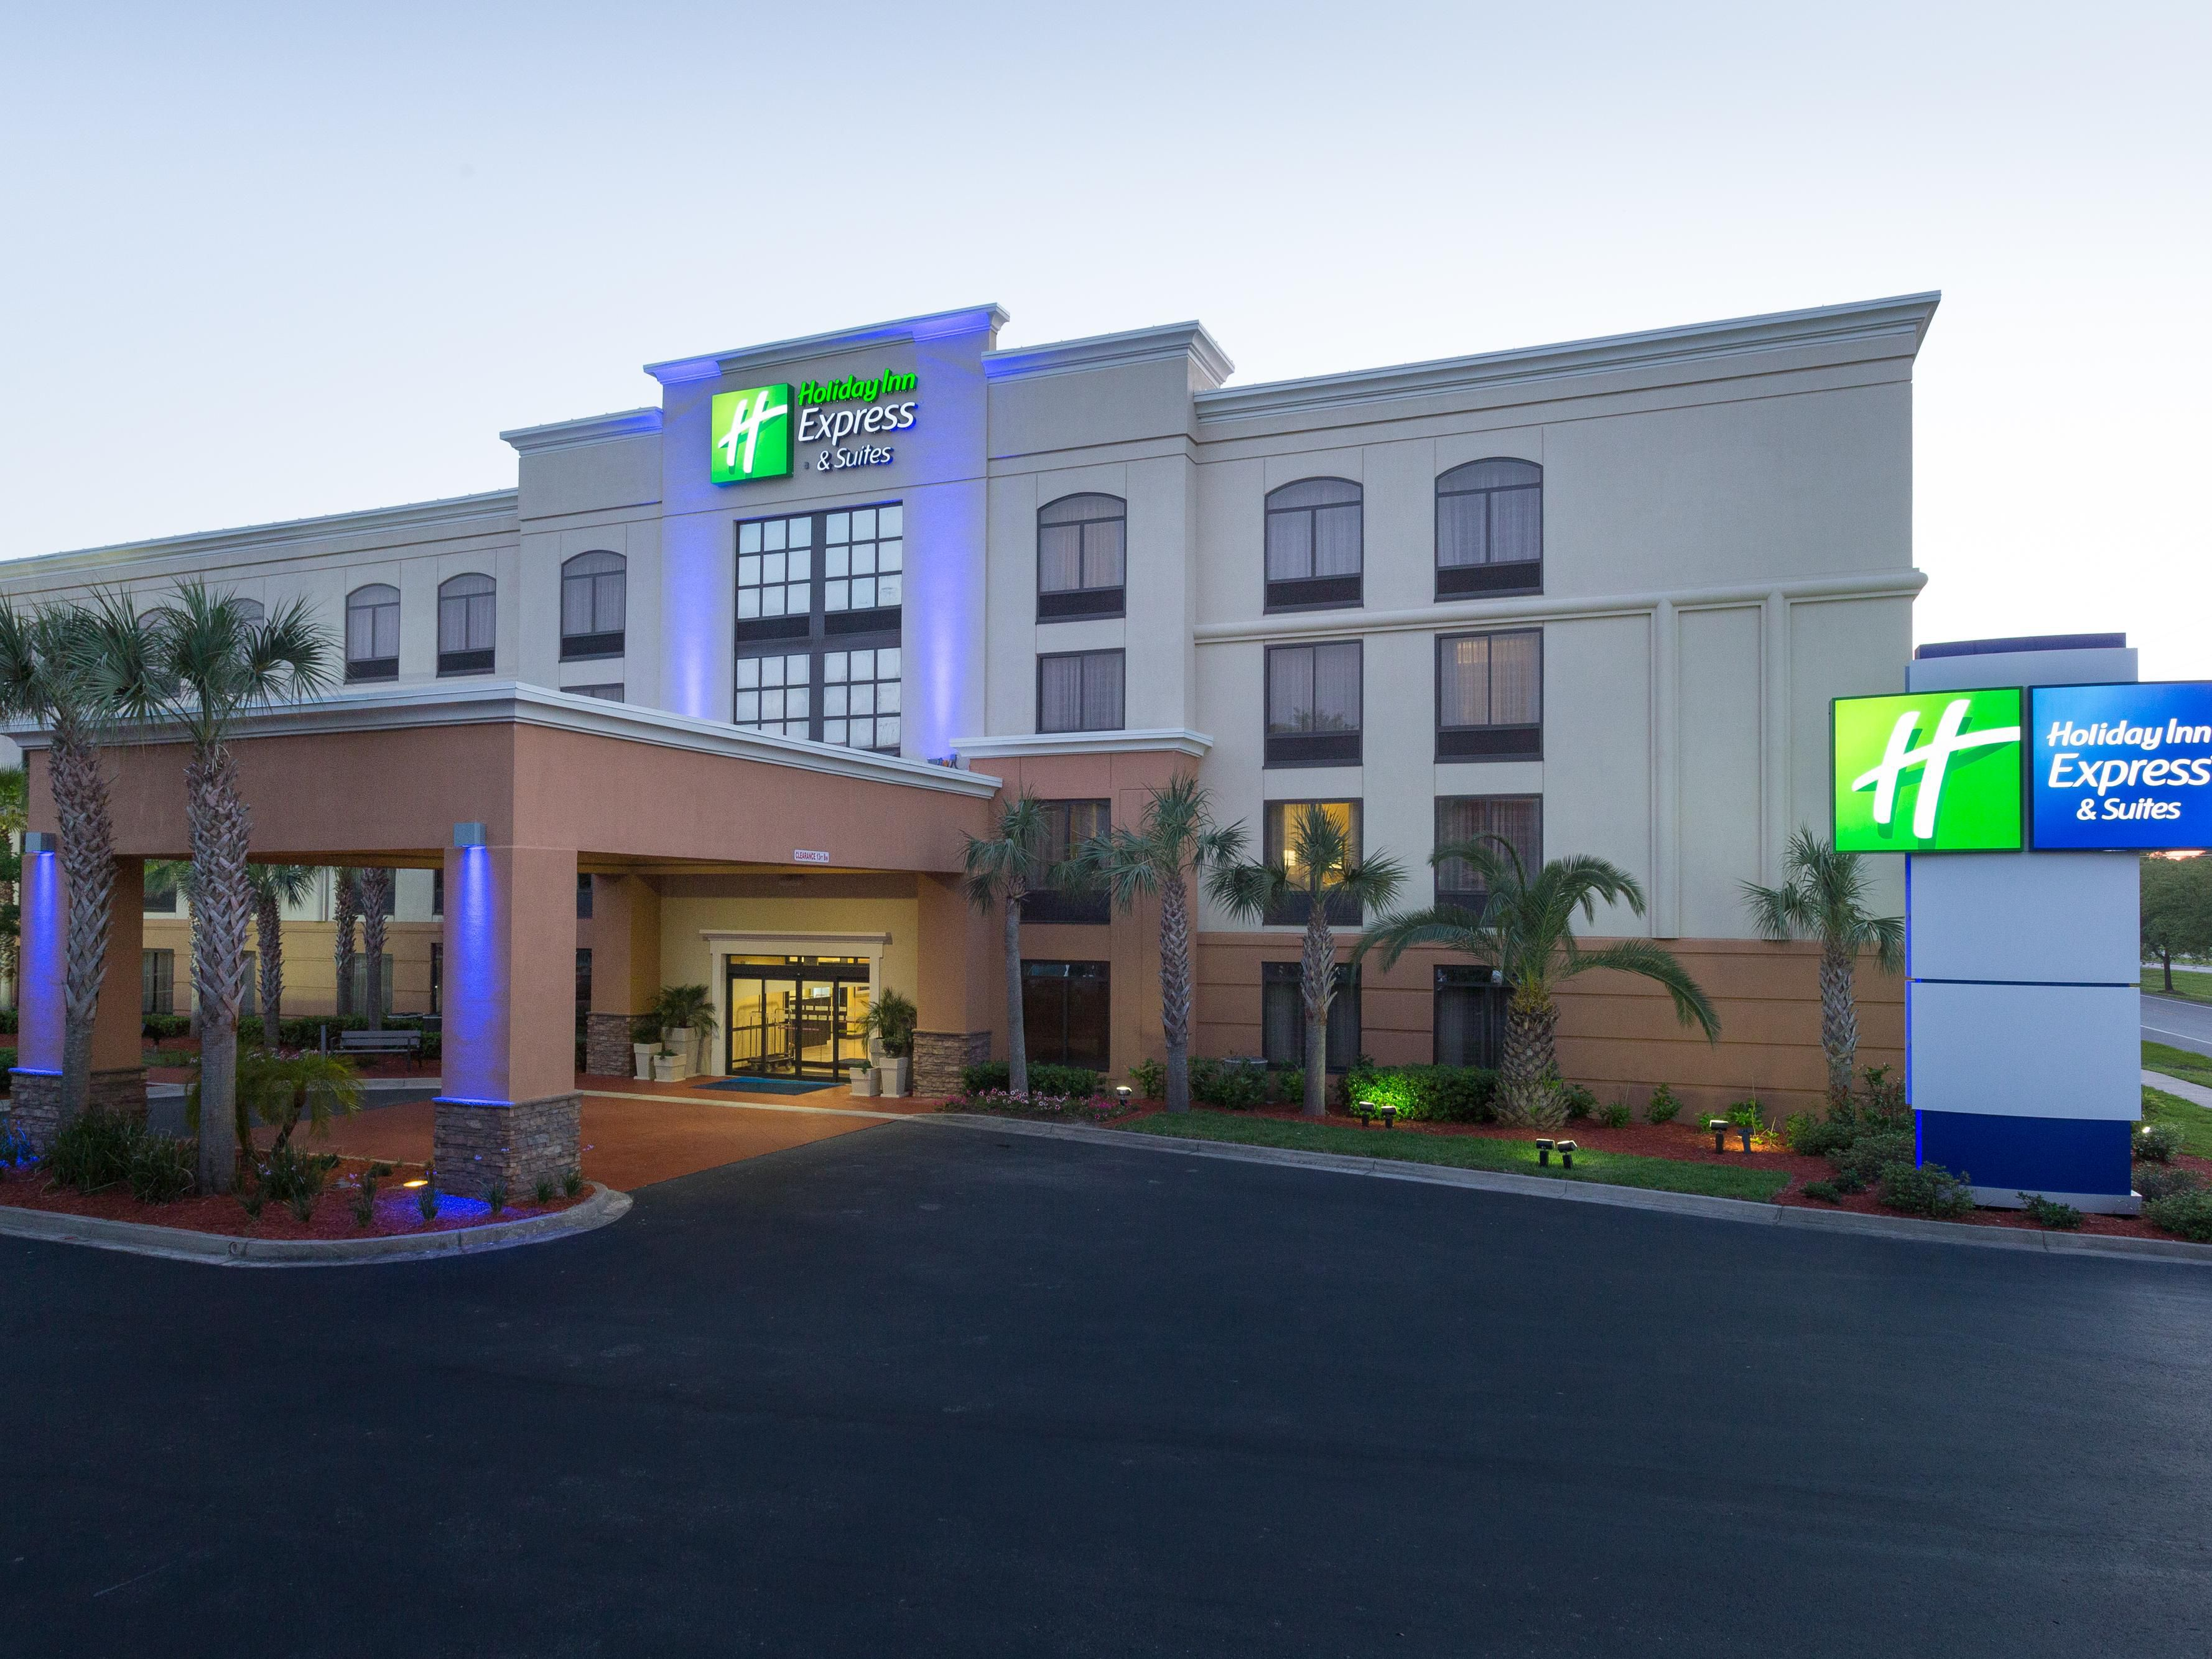 Jax Airport Hotel Near Downtown Holiday Inn Express Suites Jacksonville Airport